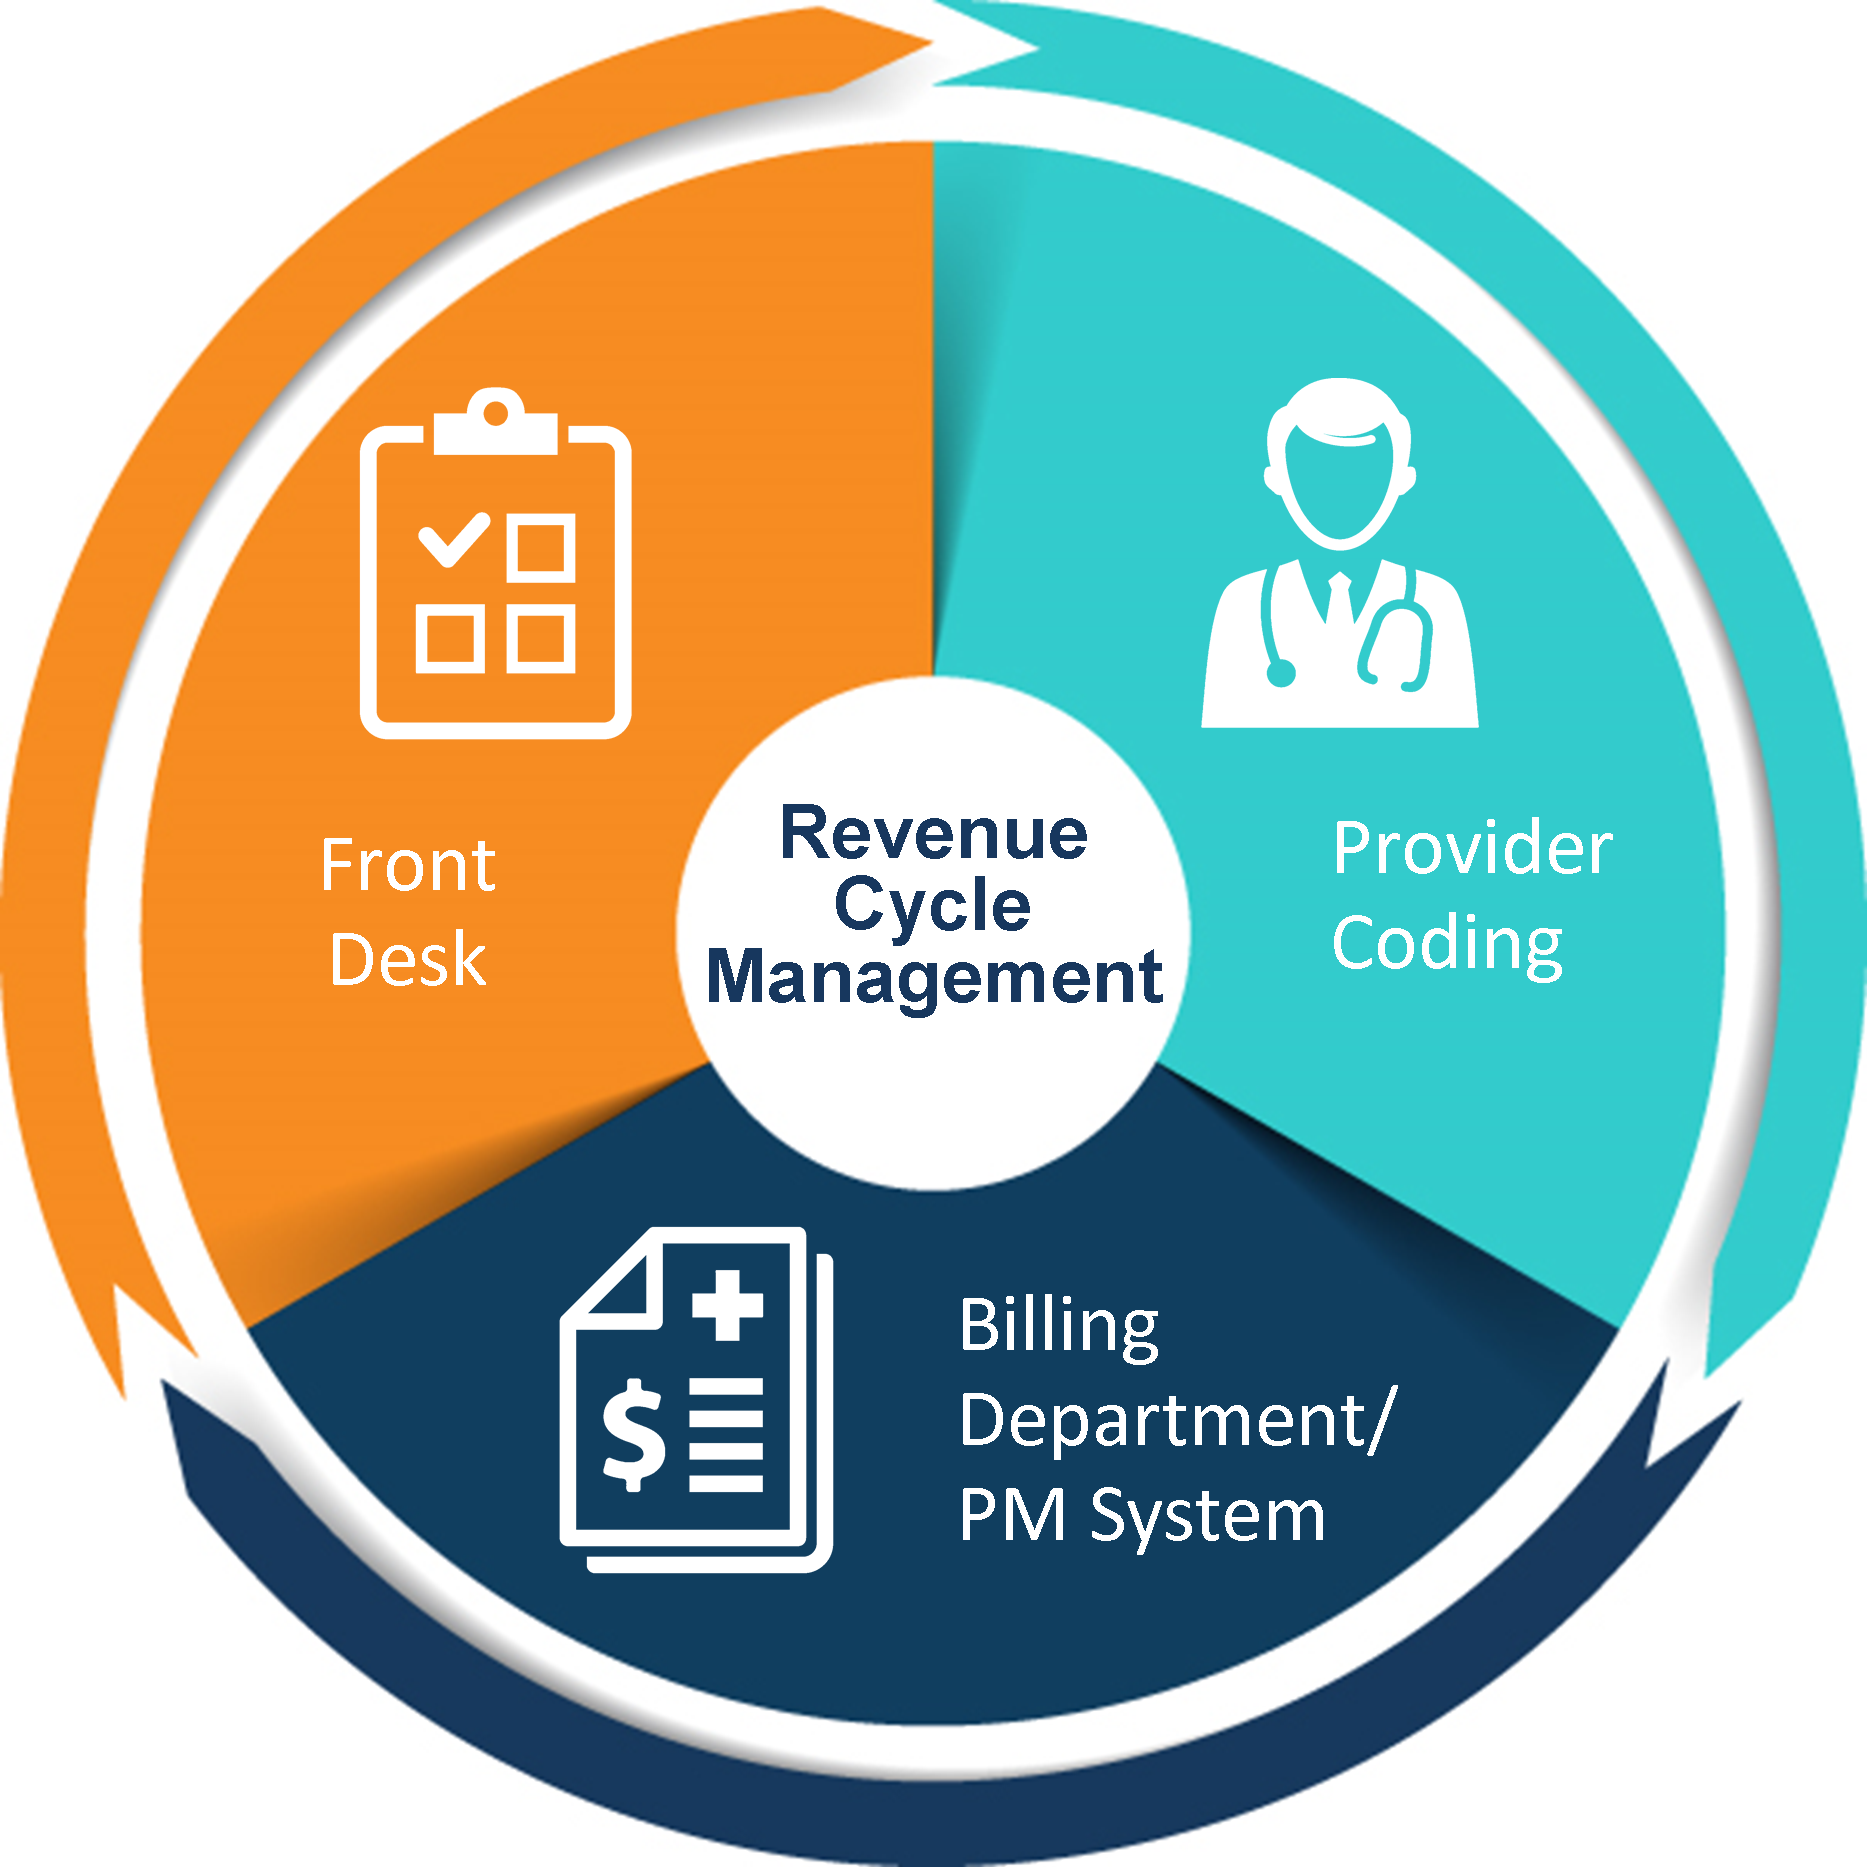 3 Factors That Affect the Revenue Cycle of Physician Practices